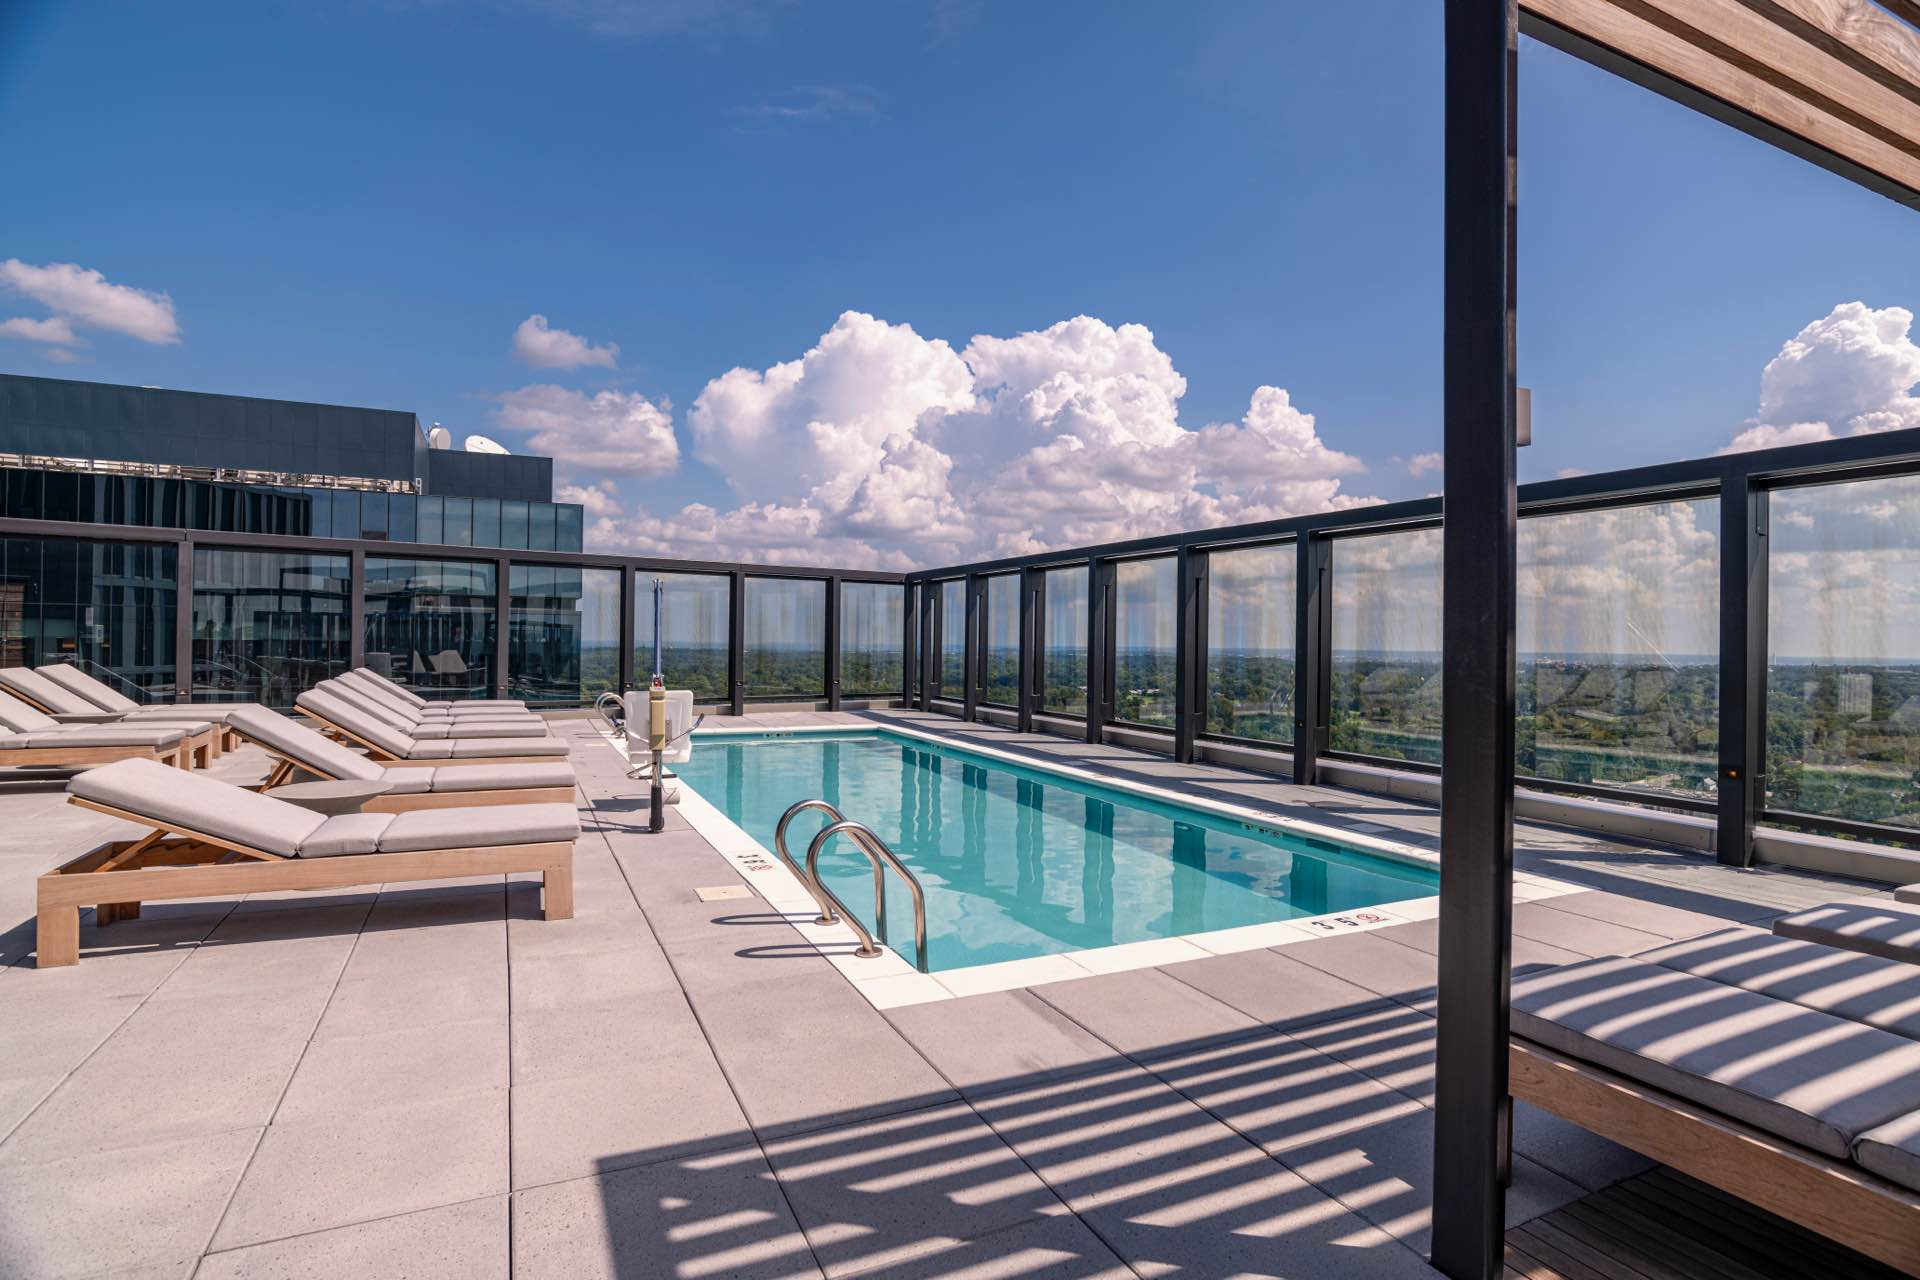 Welcome to a world of well-being and connection, featuring The Elm's rooftop heated pool and resort-style seating.